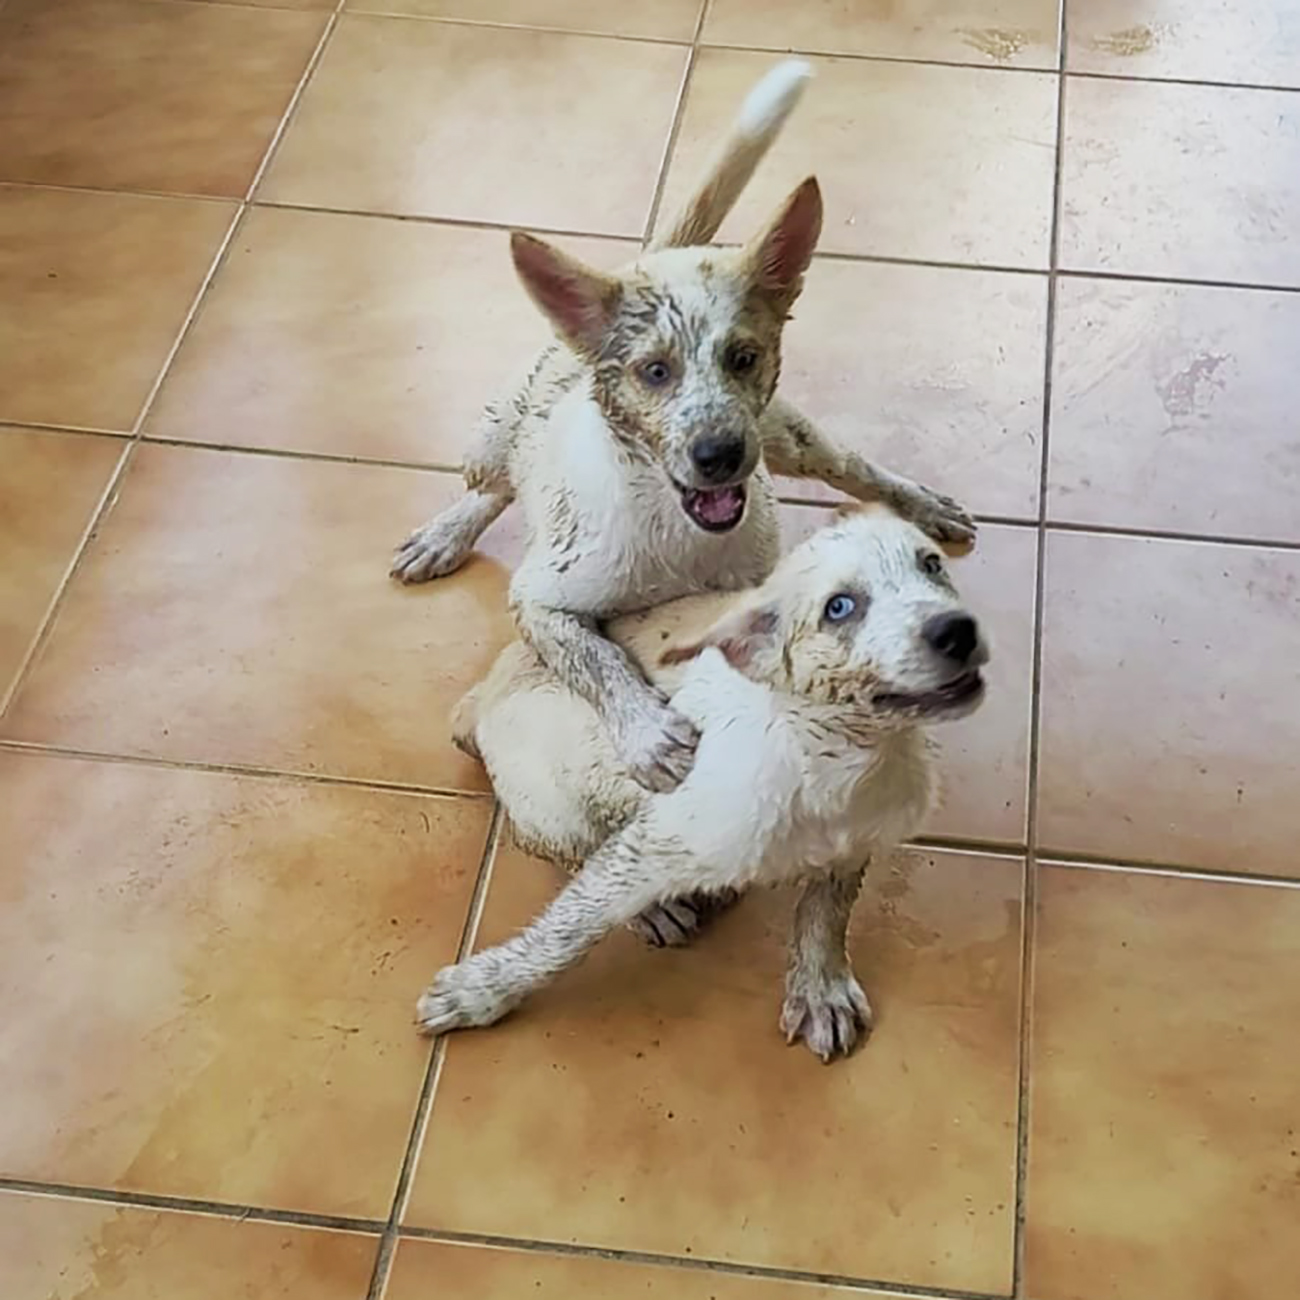 Two white puppies splattered with mud wrestle on tile floor